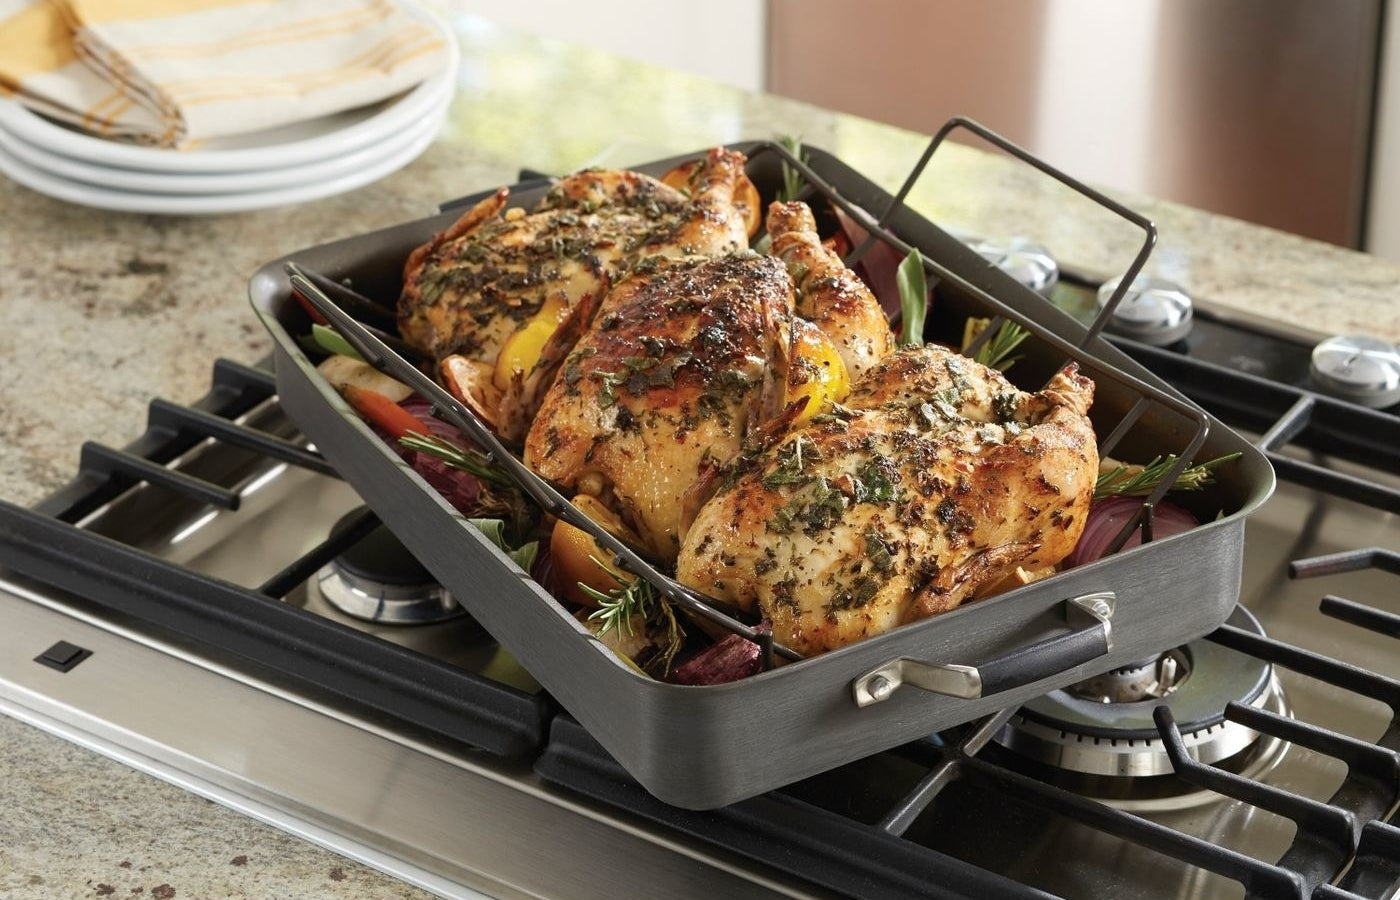 The non-stick roaster and rack